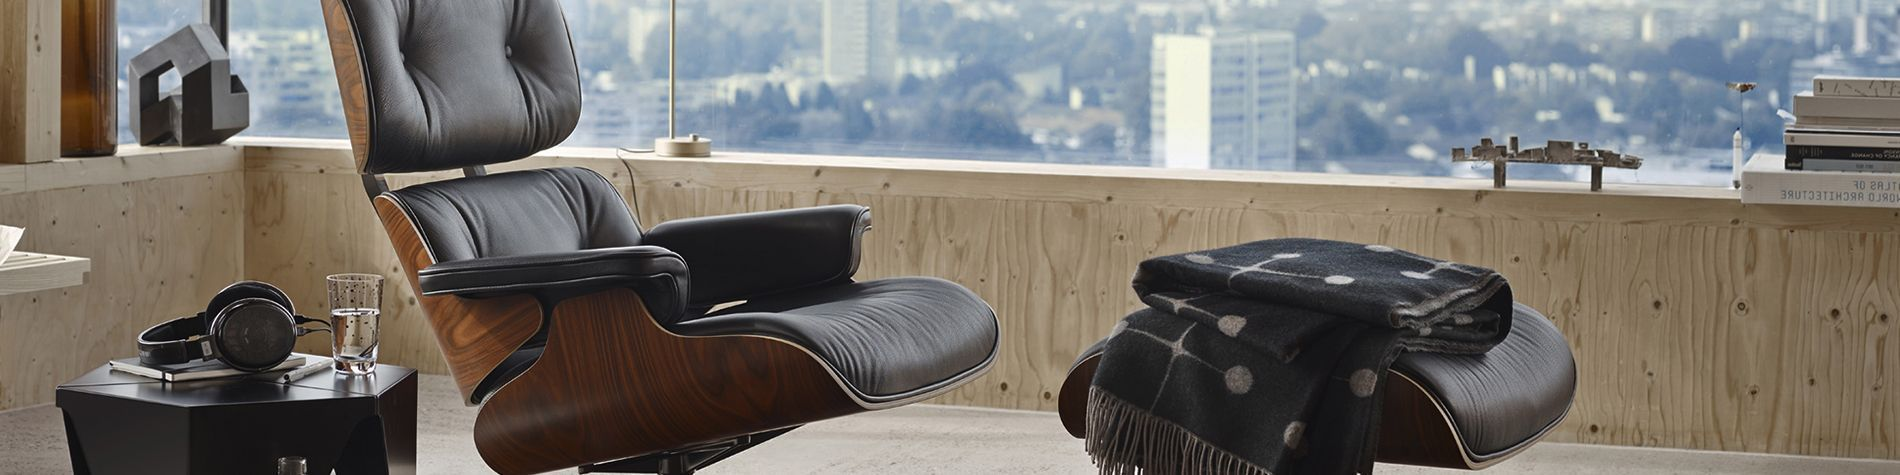 Vitra Eames Lounge Chair Experience